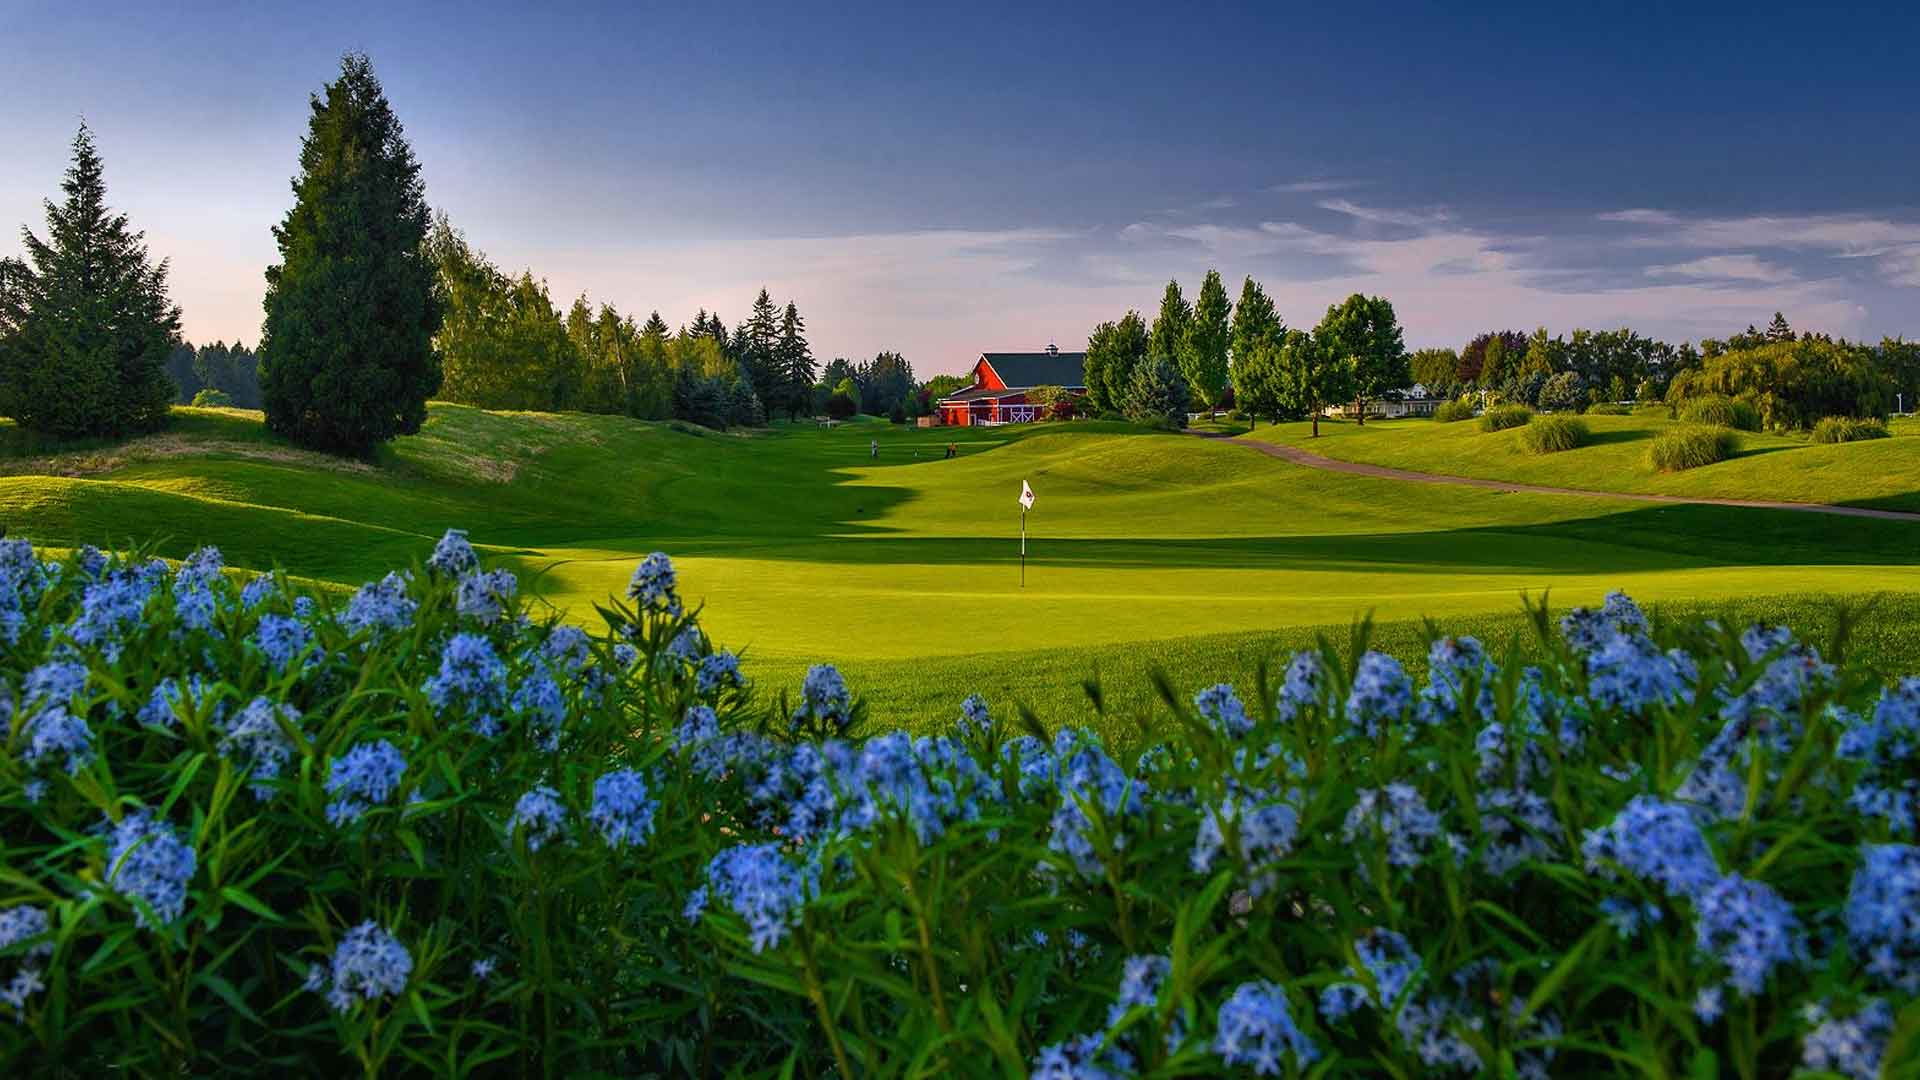 Langdon Farms Daily Deal Tee Times